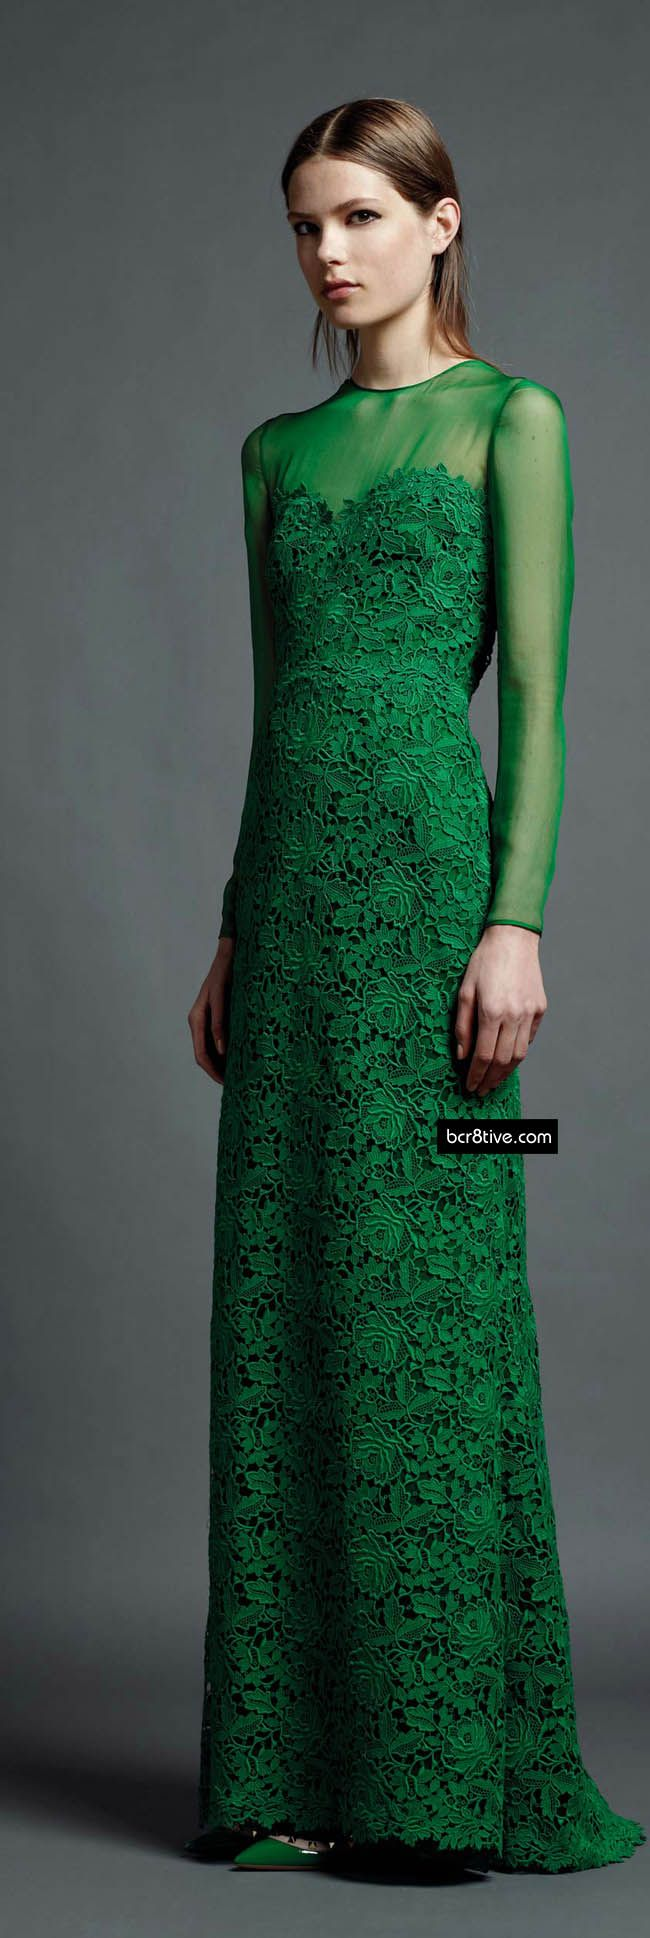 Valentino Pre Spring 2013 Green lace dress with illusion sleeves